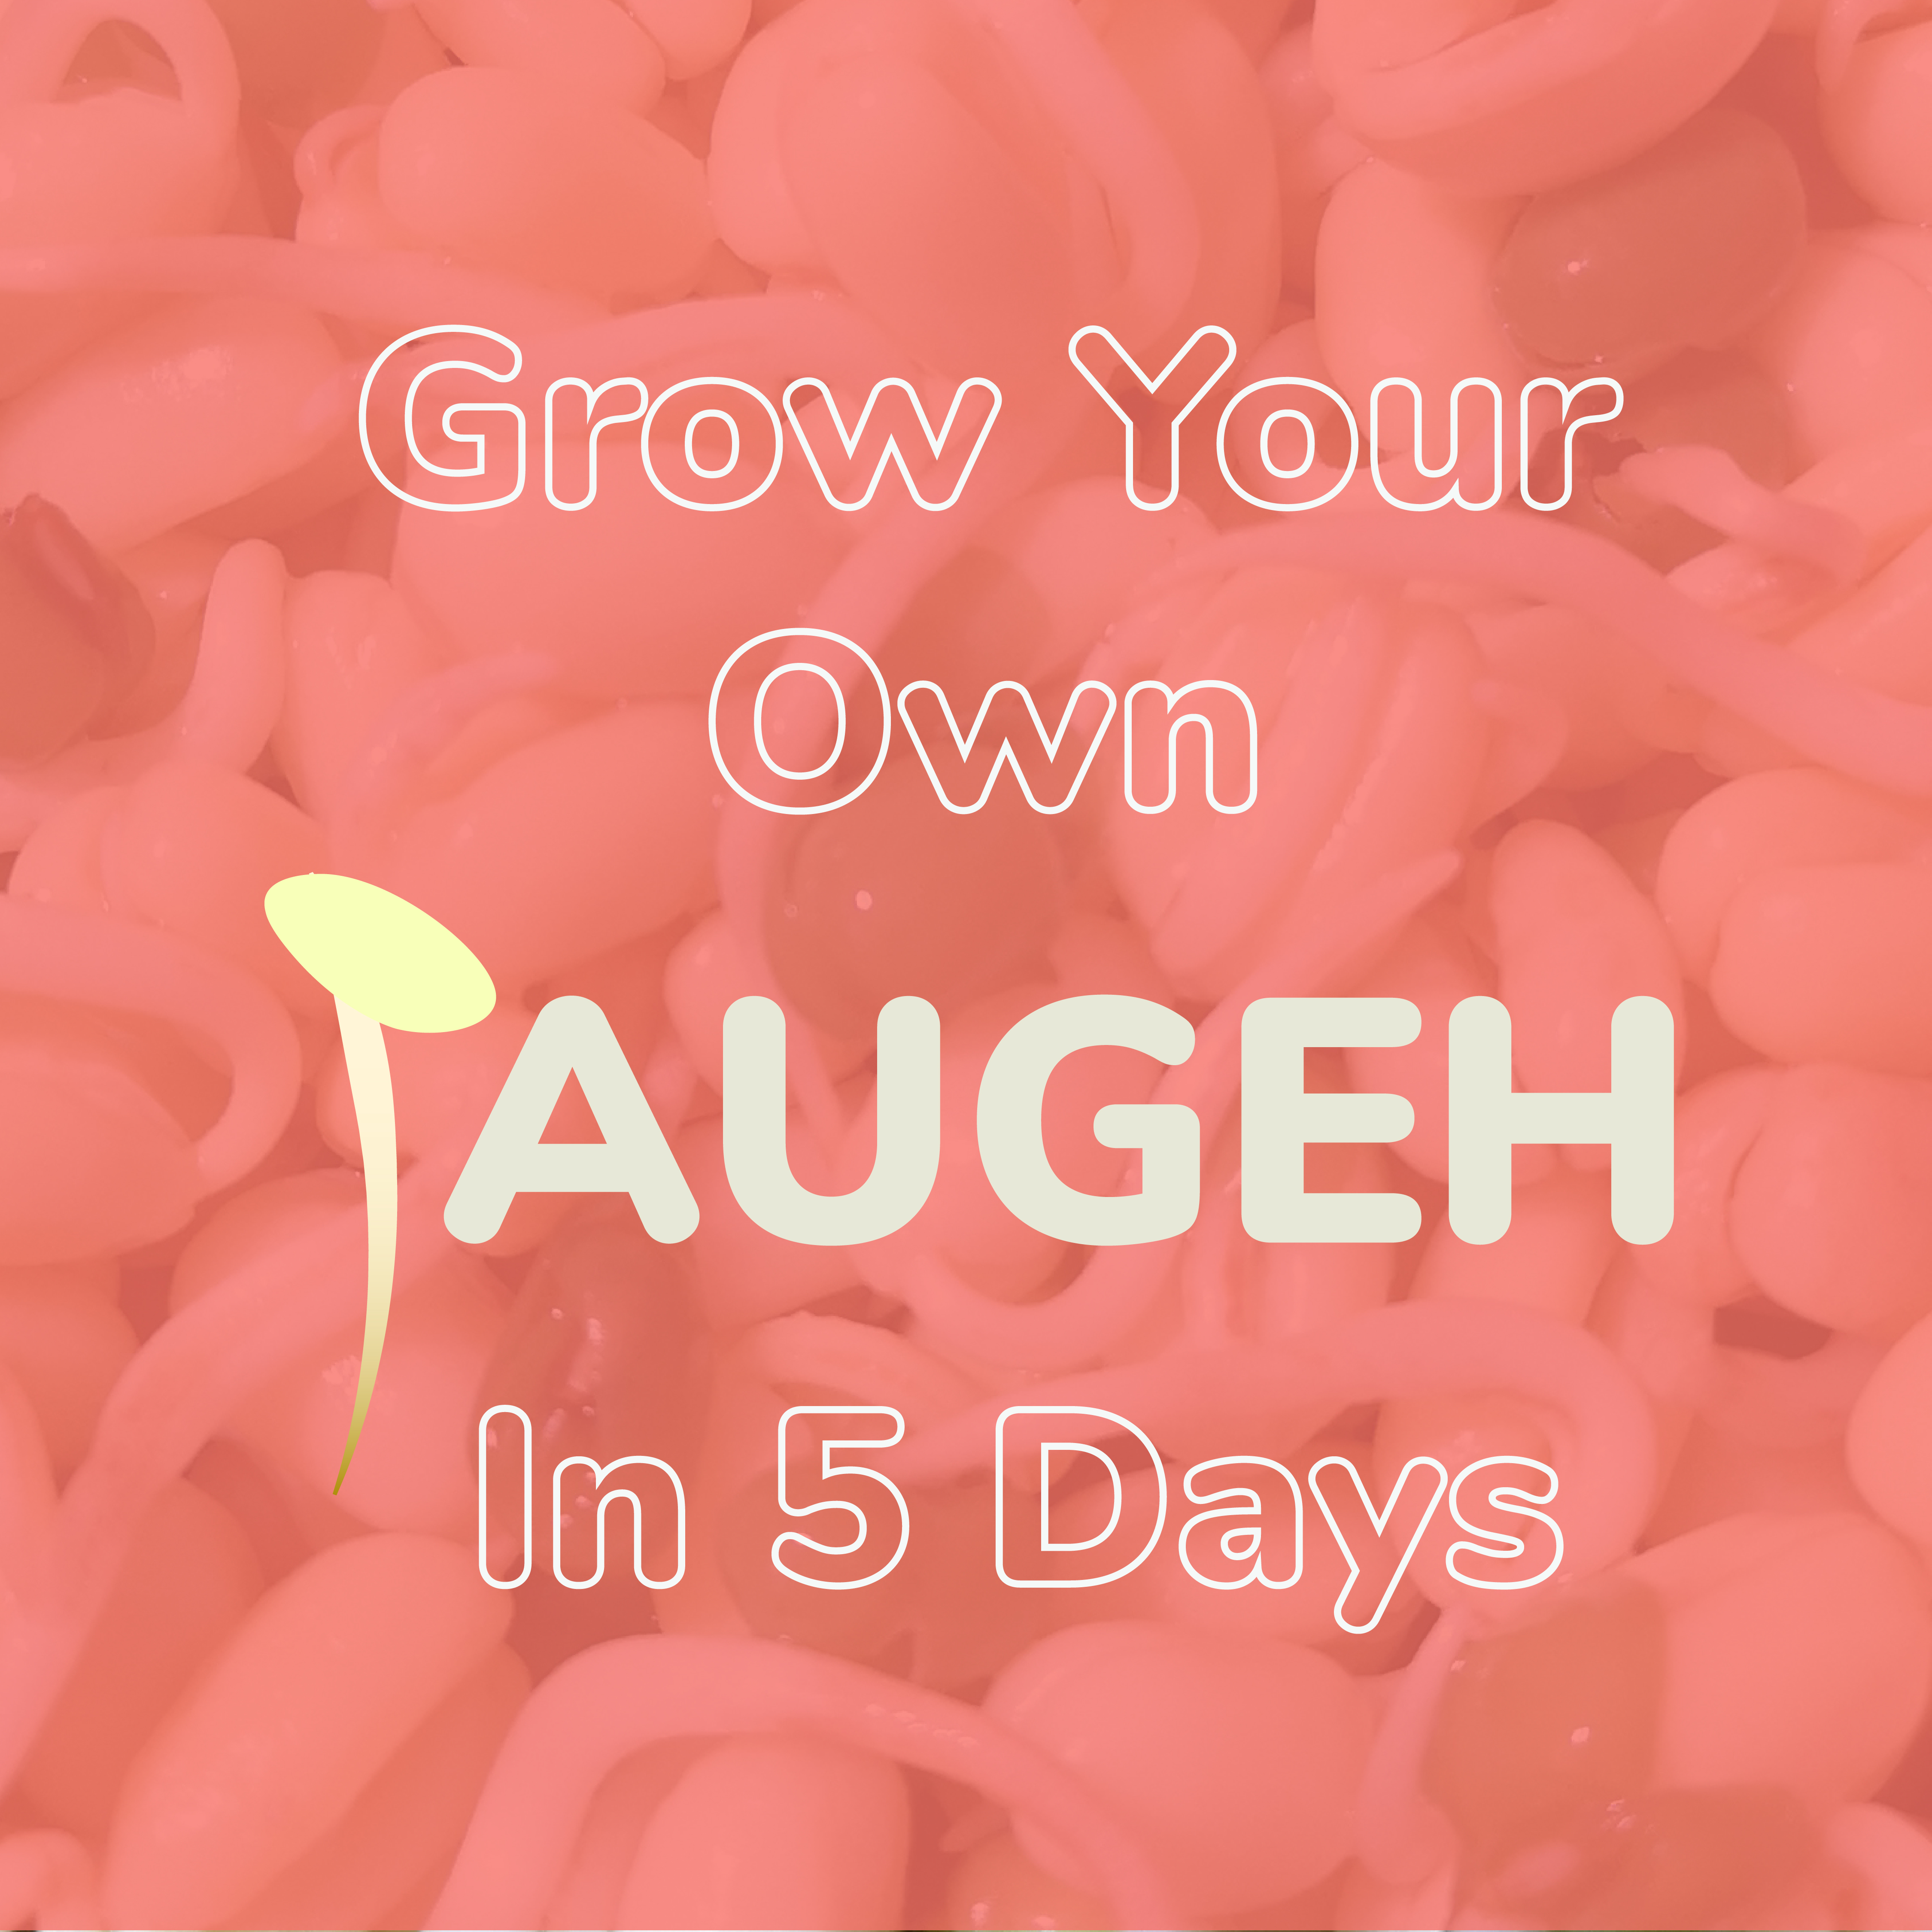 Grow your own taugeh in 5 days